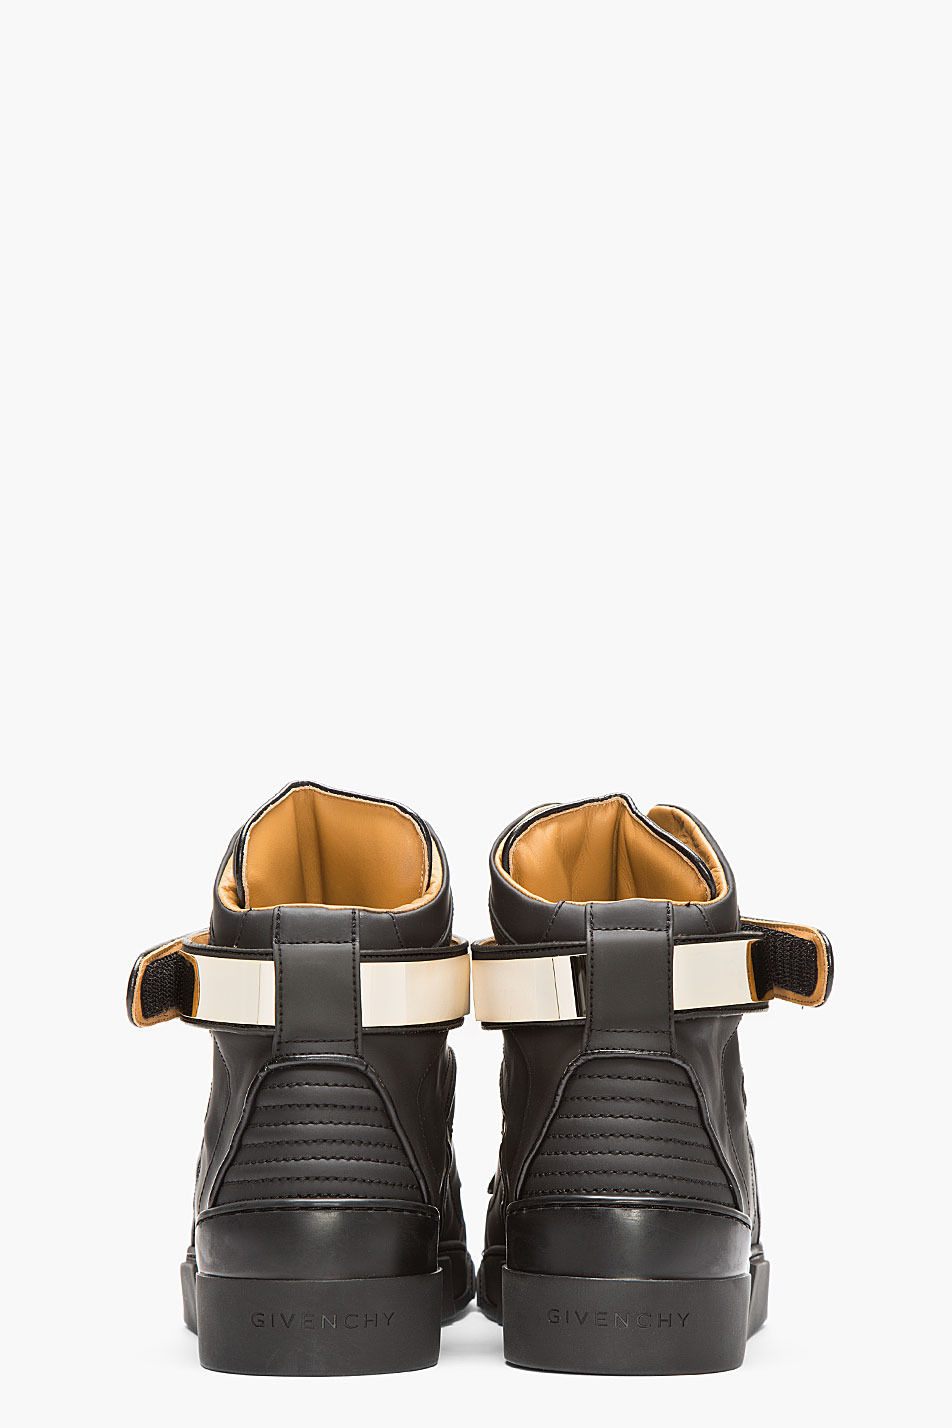 Matte Black × Metal Velcro strap givenchy sneakers 2